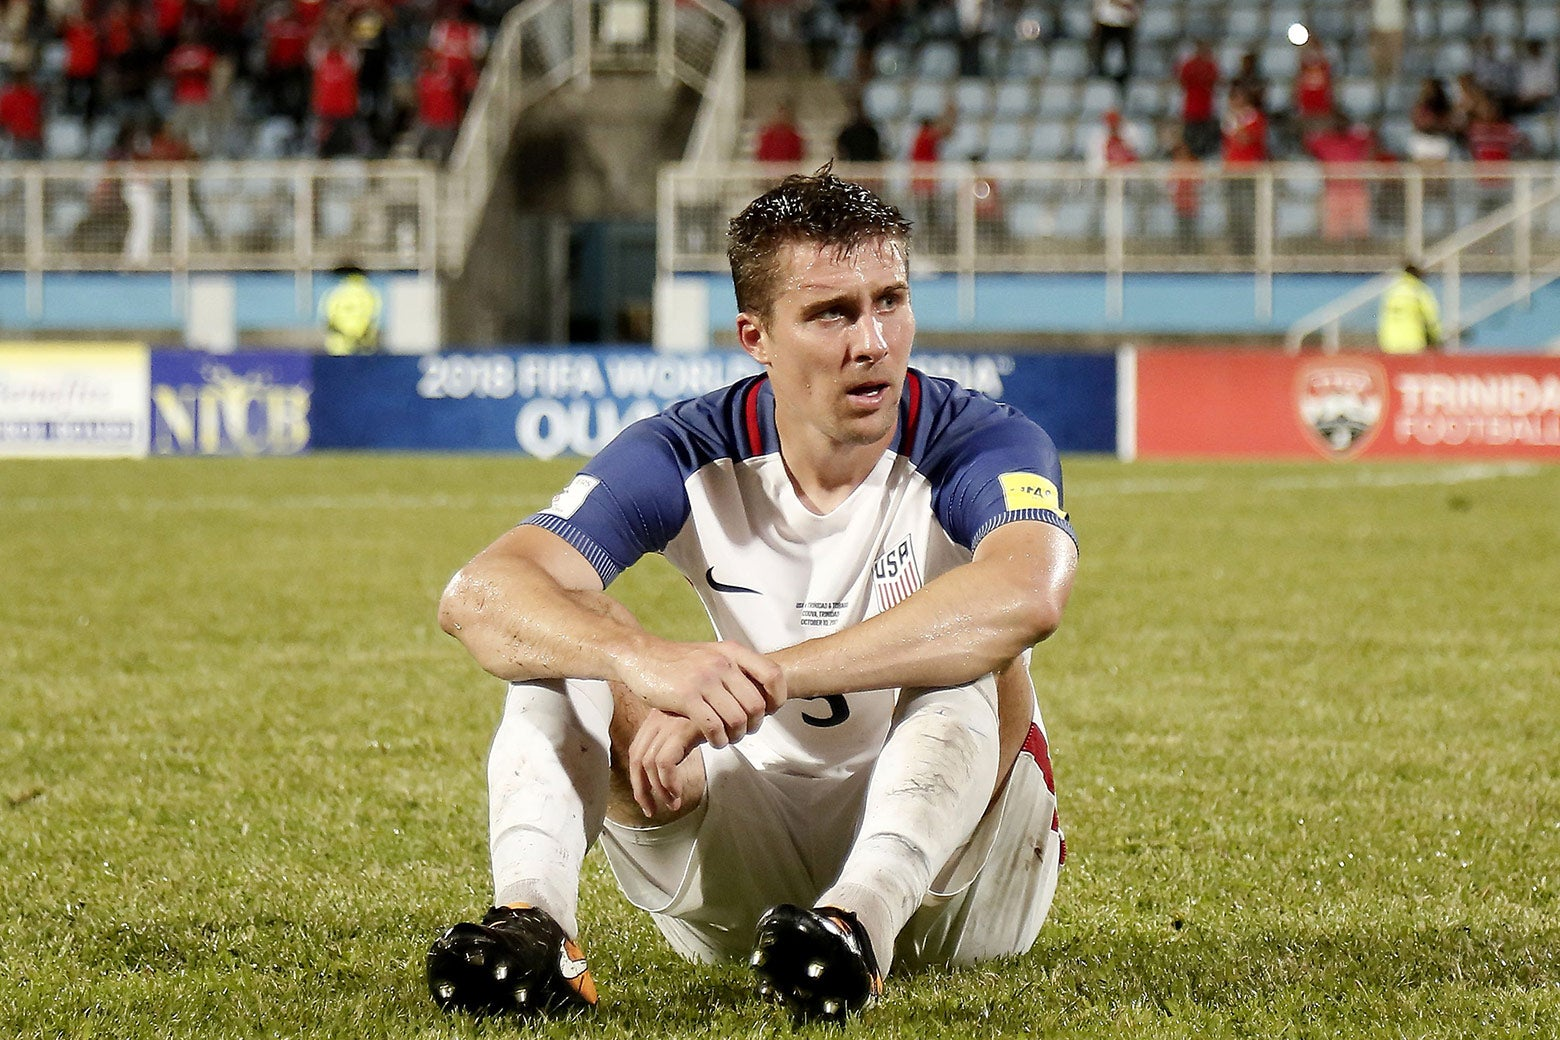 USA's Matt Besler sits on the field in dejection after losing to Trinidad and Tobago 2–1 in a qualifier match on Oct. 10.